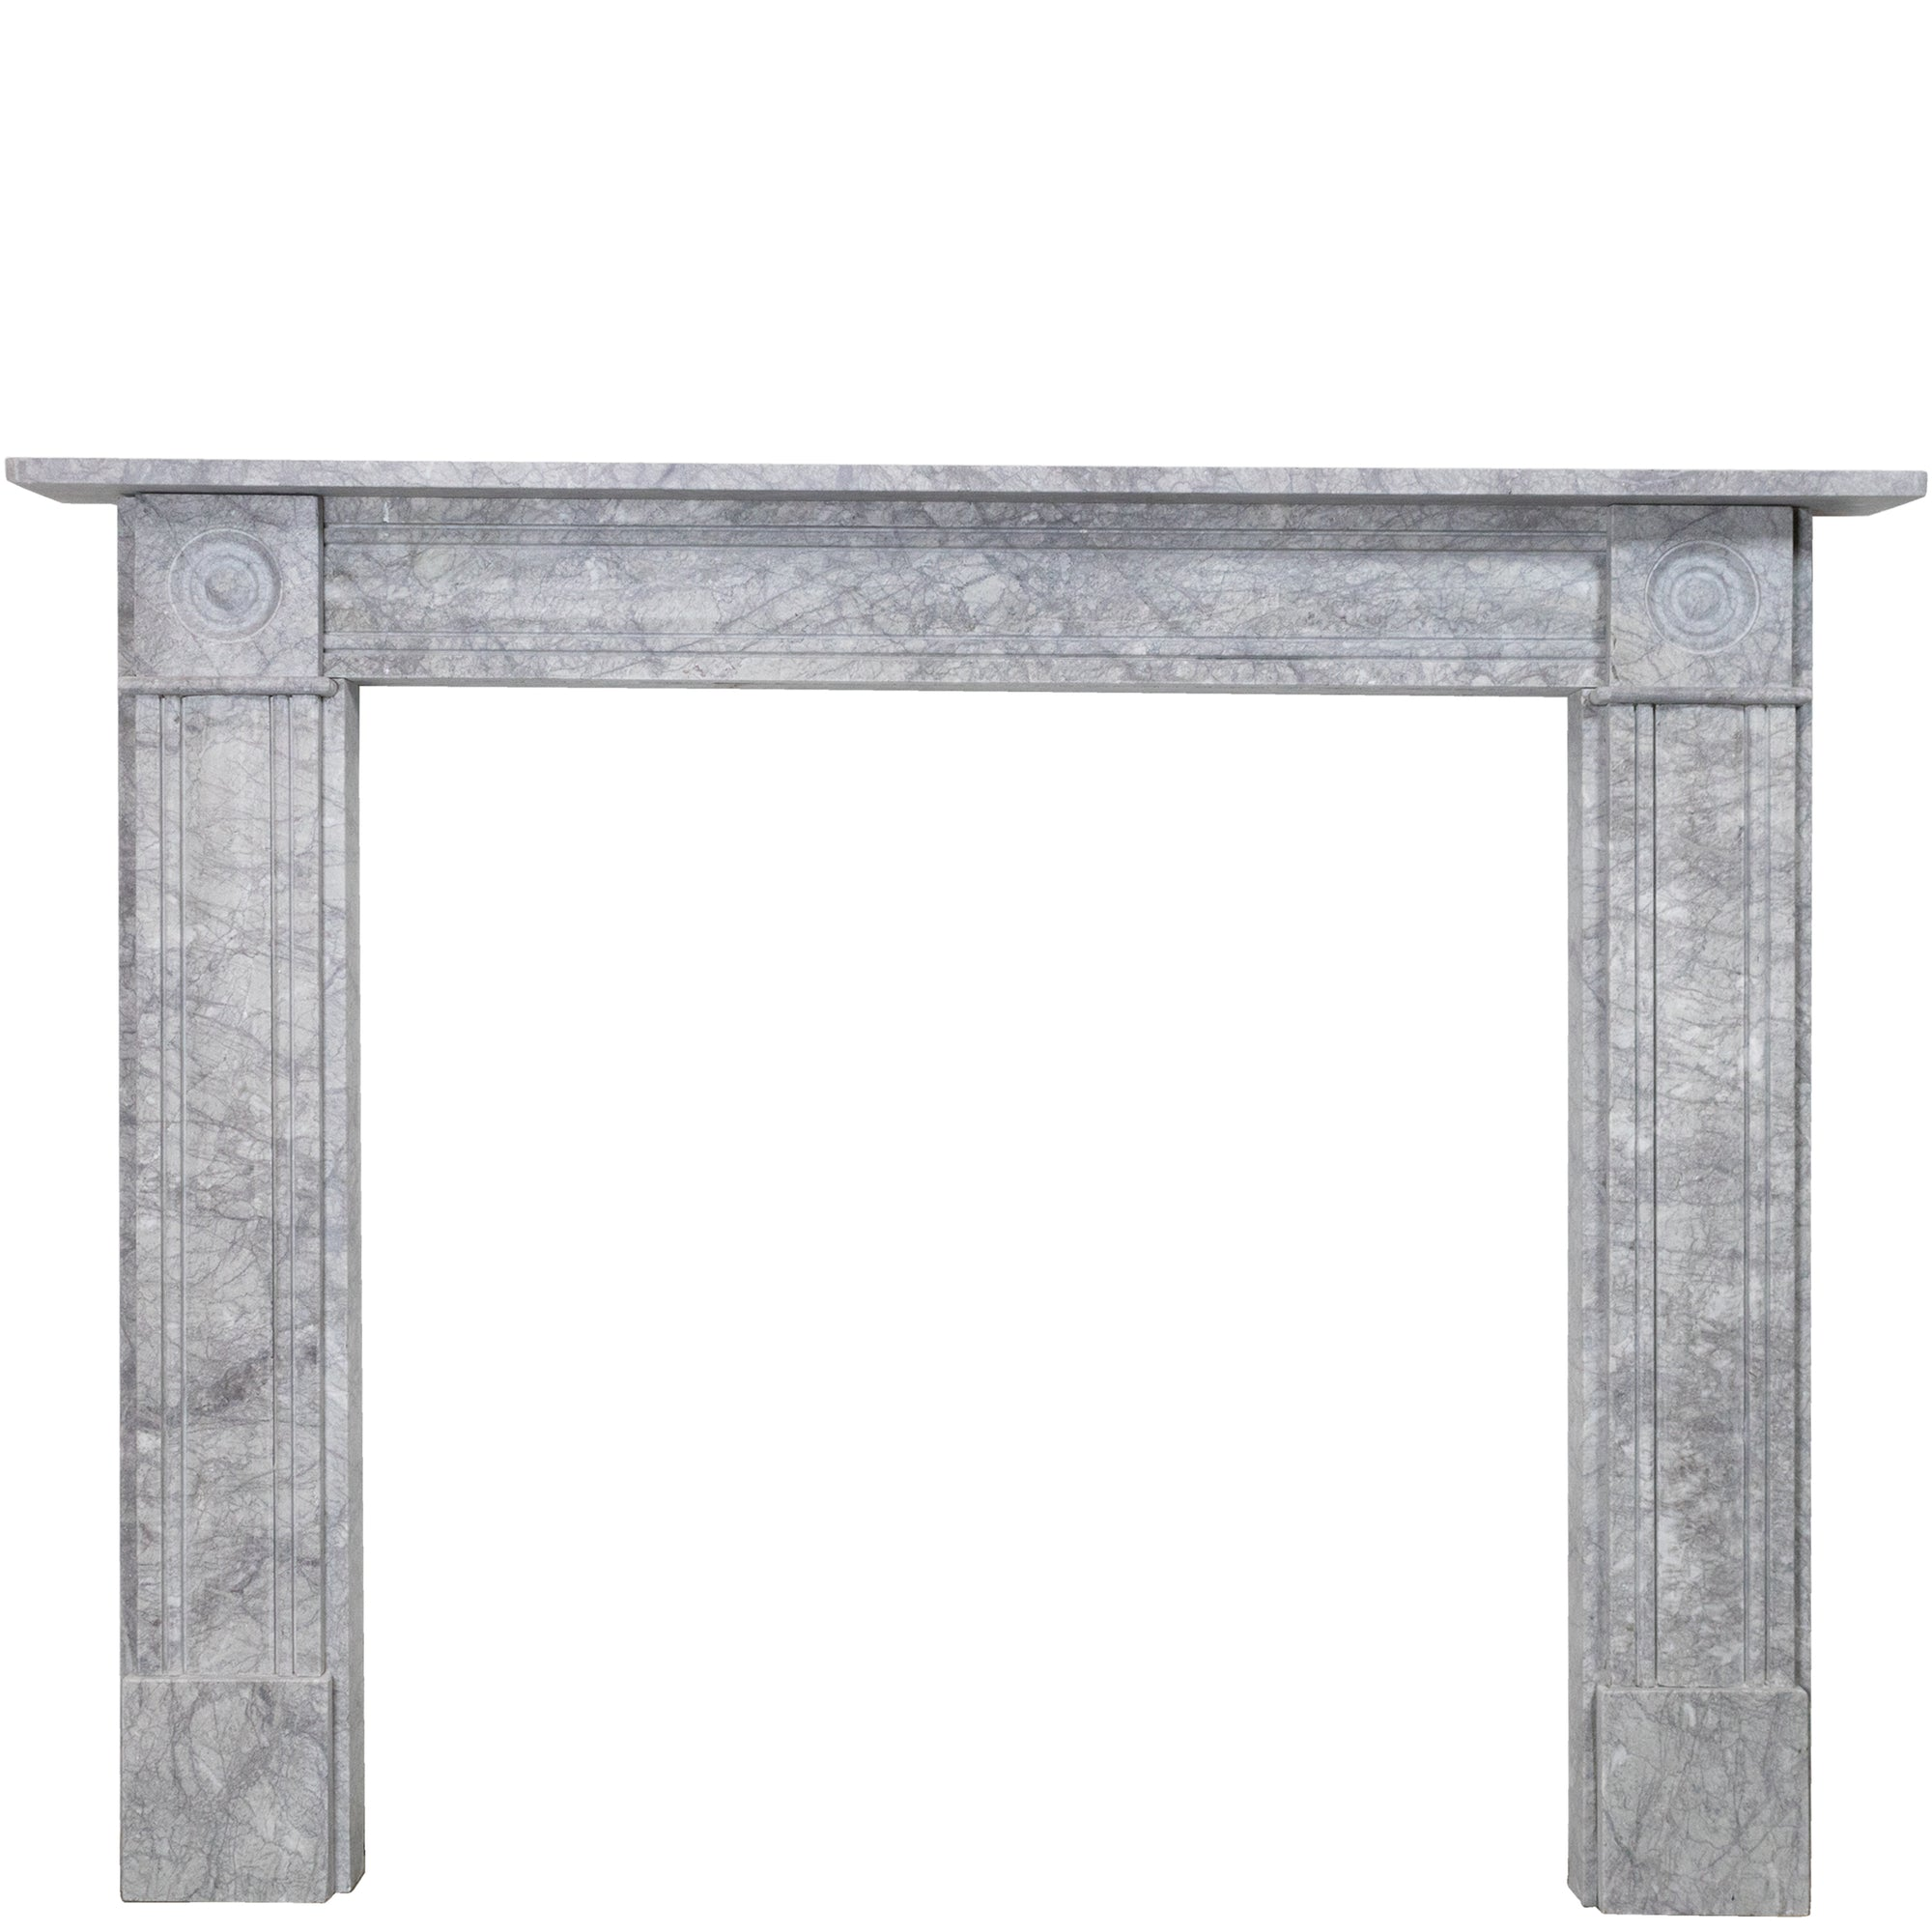 Georgian Style Bullseye Grey Marble Chimneypiece | The Architectural Forum